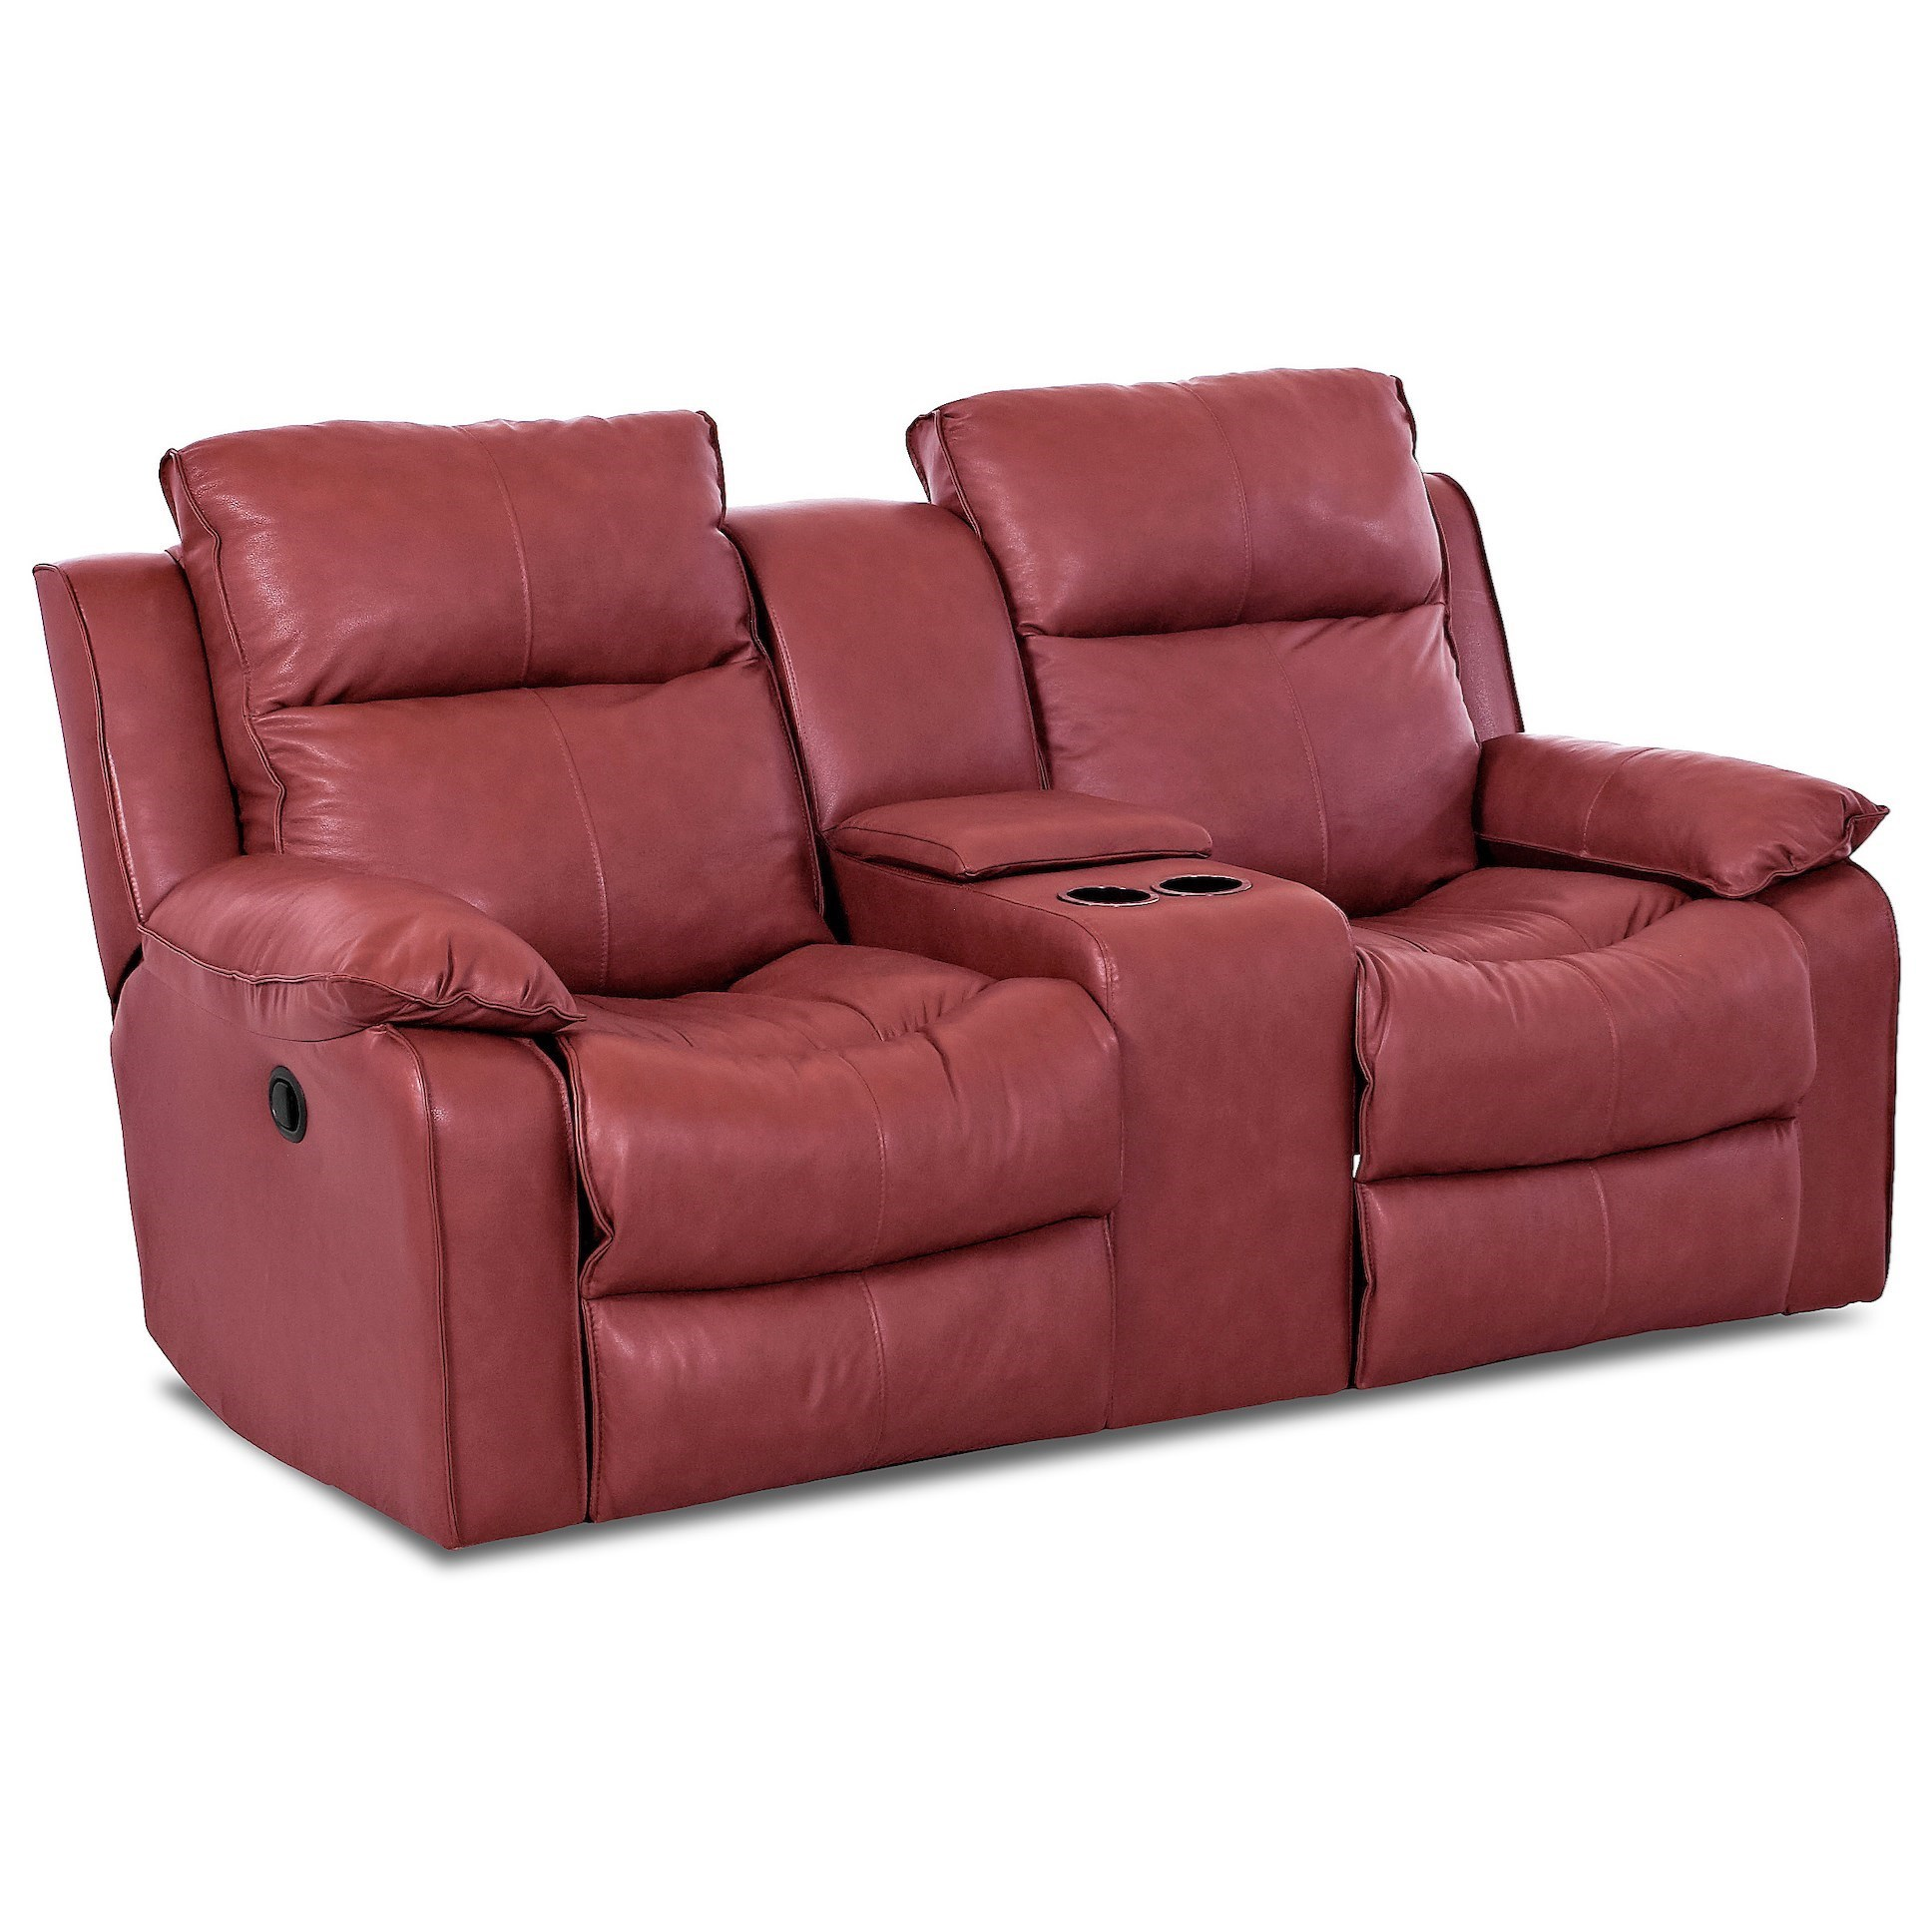 Castaway Power Reclining Console Loveseat by Klaussner at Northeast Factory Direct